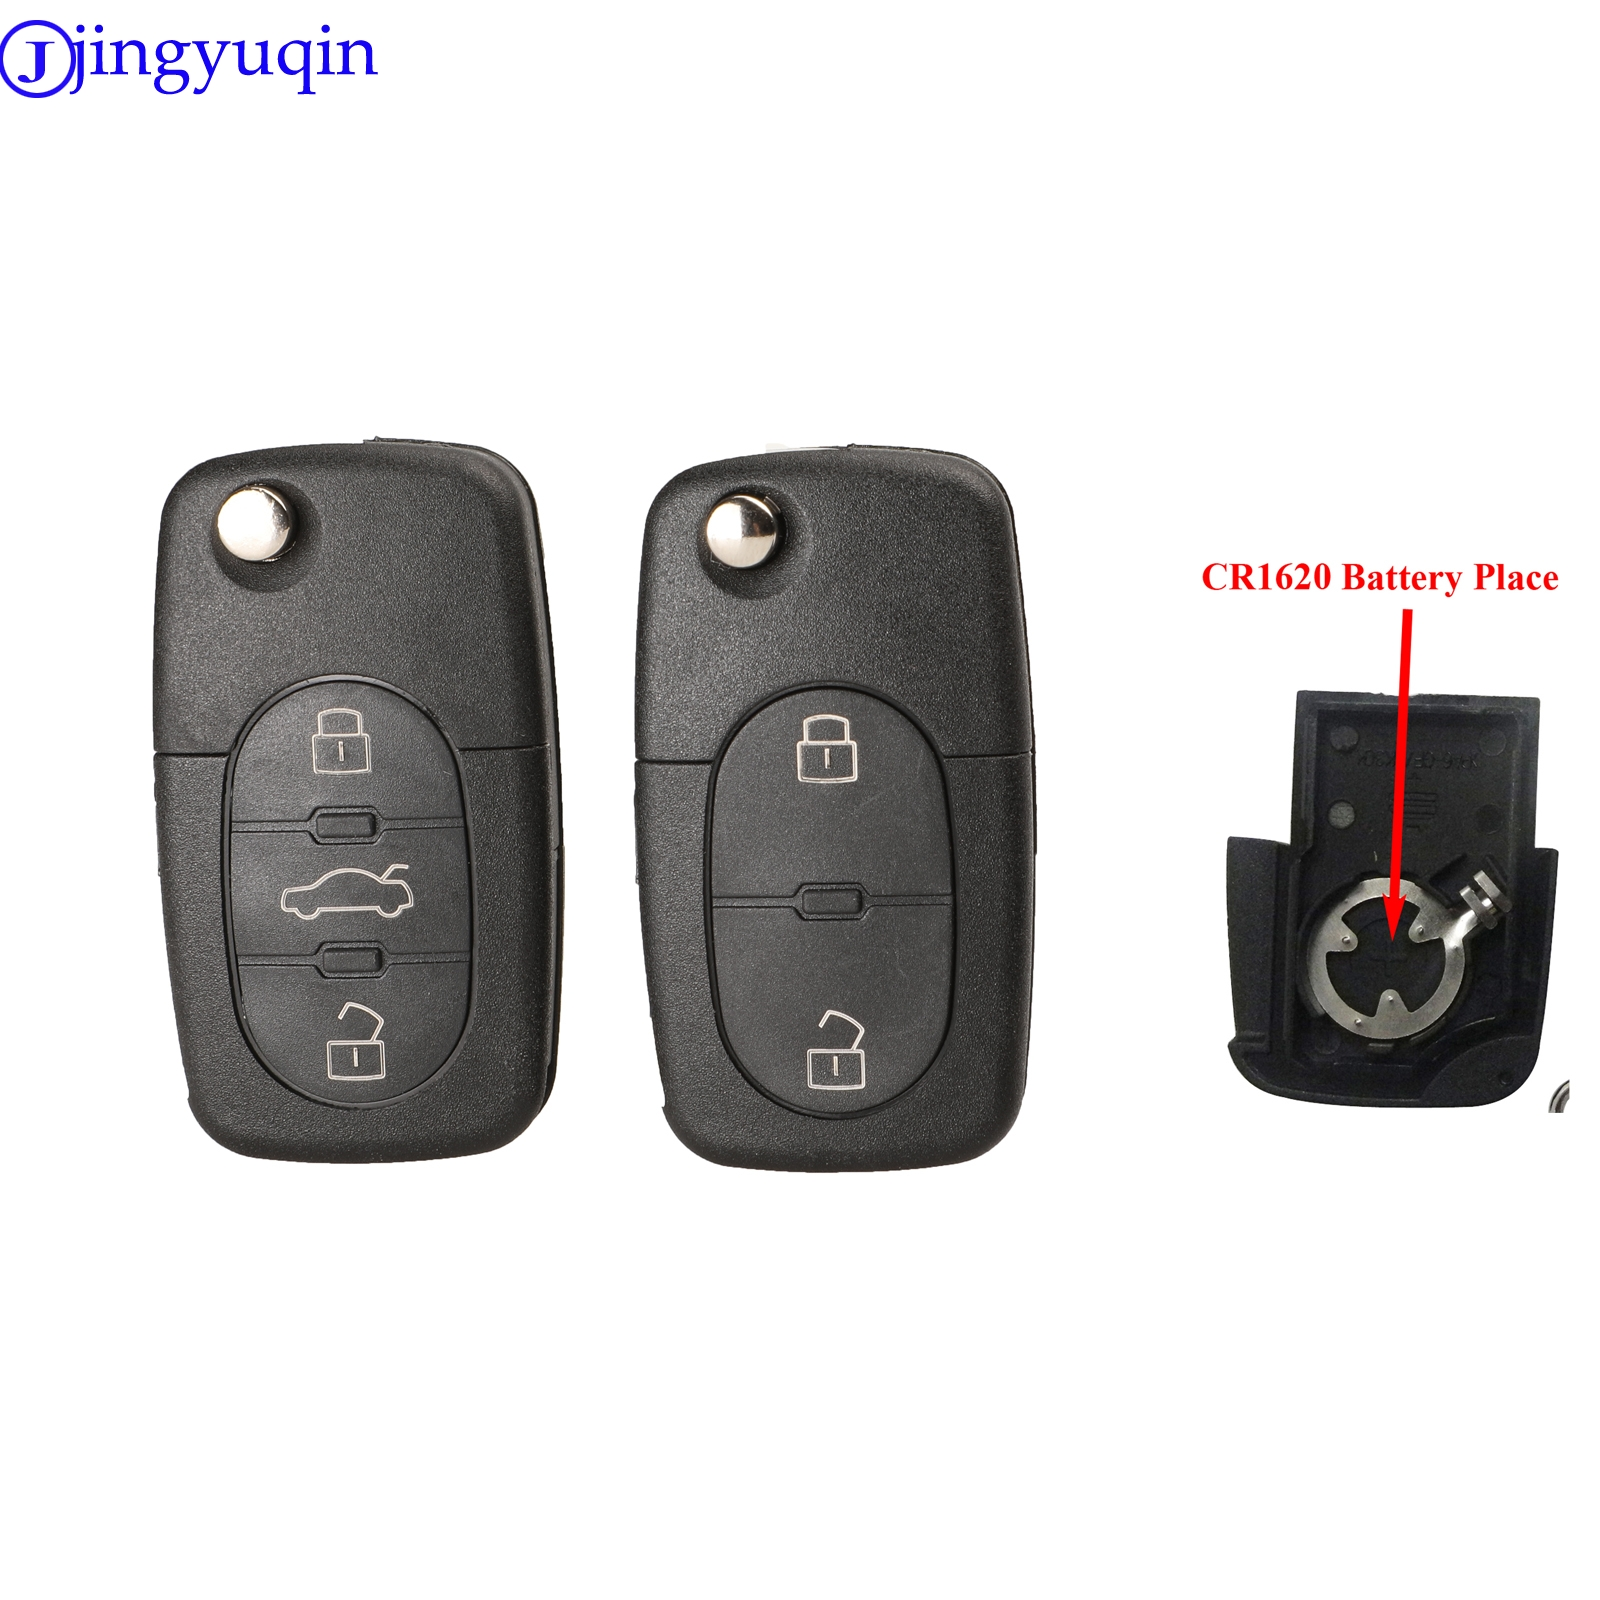 jingyuqin 2/3 Buttons Flip Remote Car Key Shell Styling For Audi A2 A3 A4 A6 A8 TT Fob Case Cover CR1620 Battery Place image